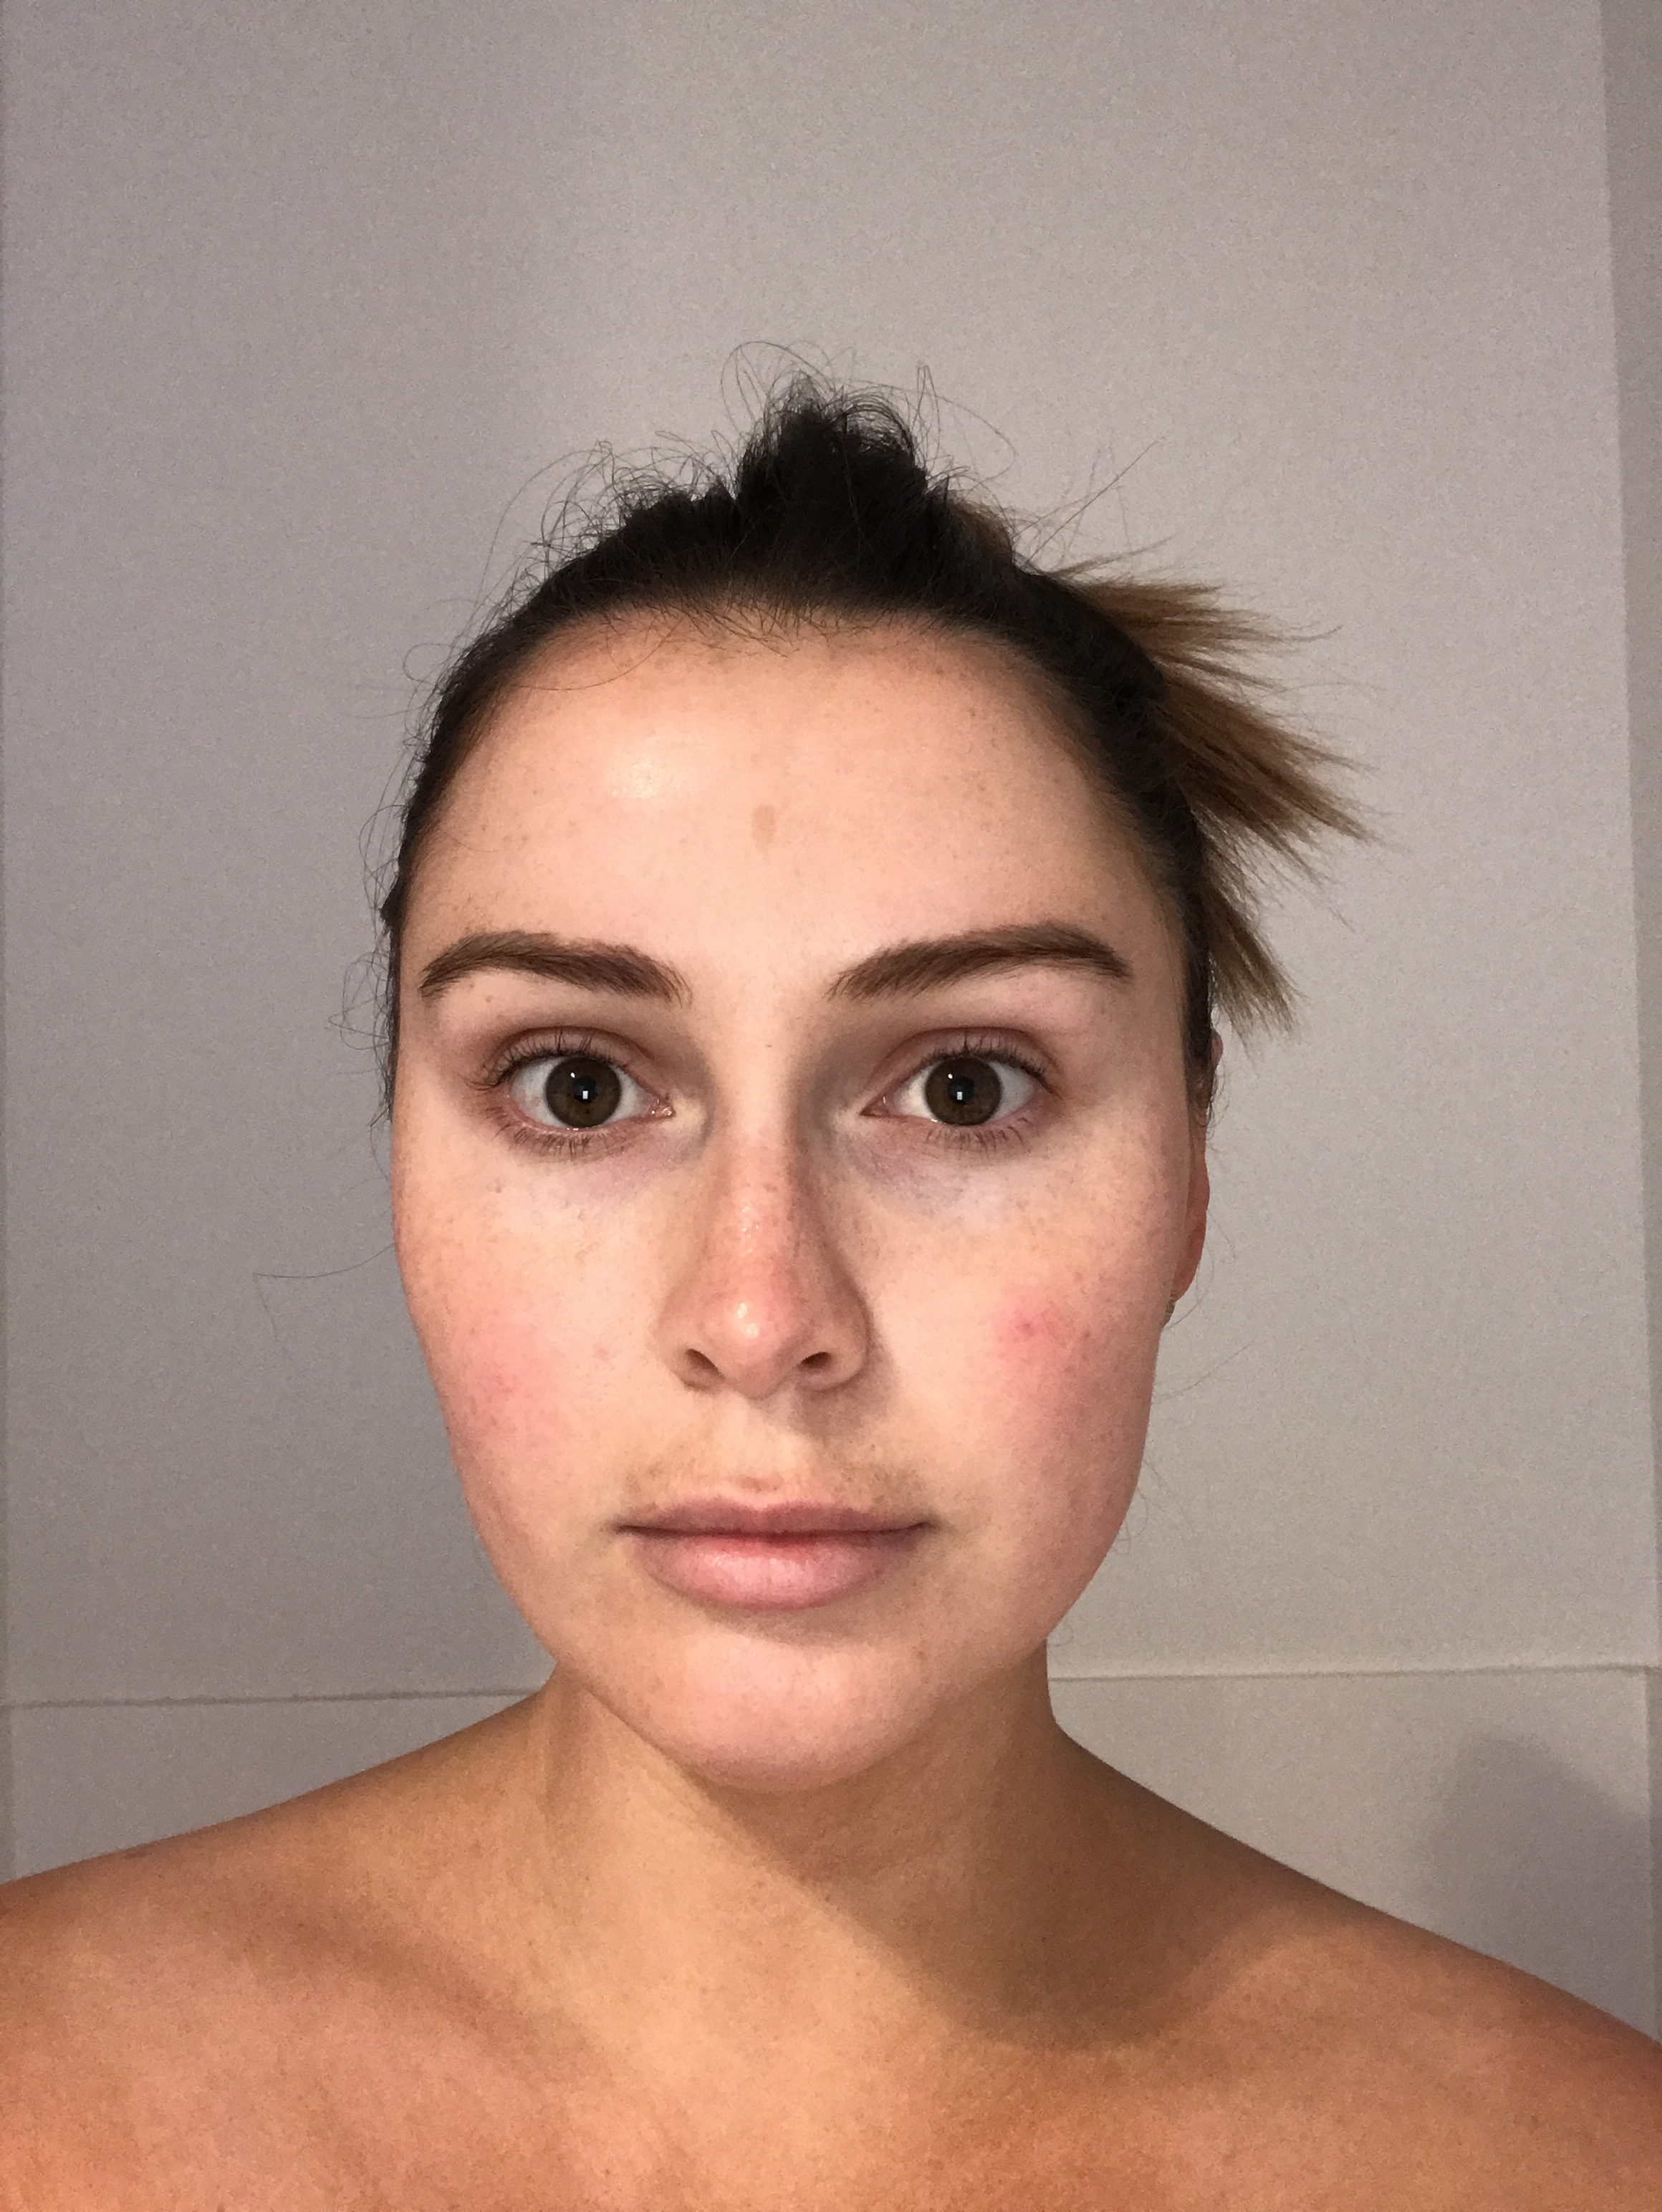 Day 1 - My skin felt very smooth and looked very clean, I also started to notice the pigmentation on my top lip and around my hairline getting darker